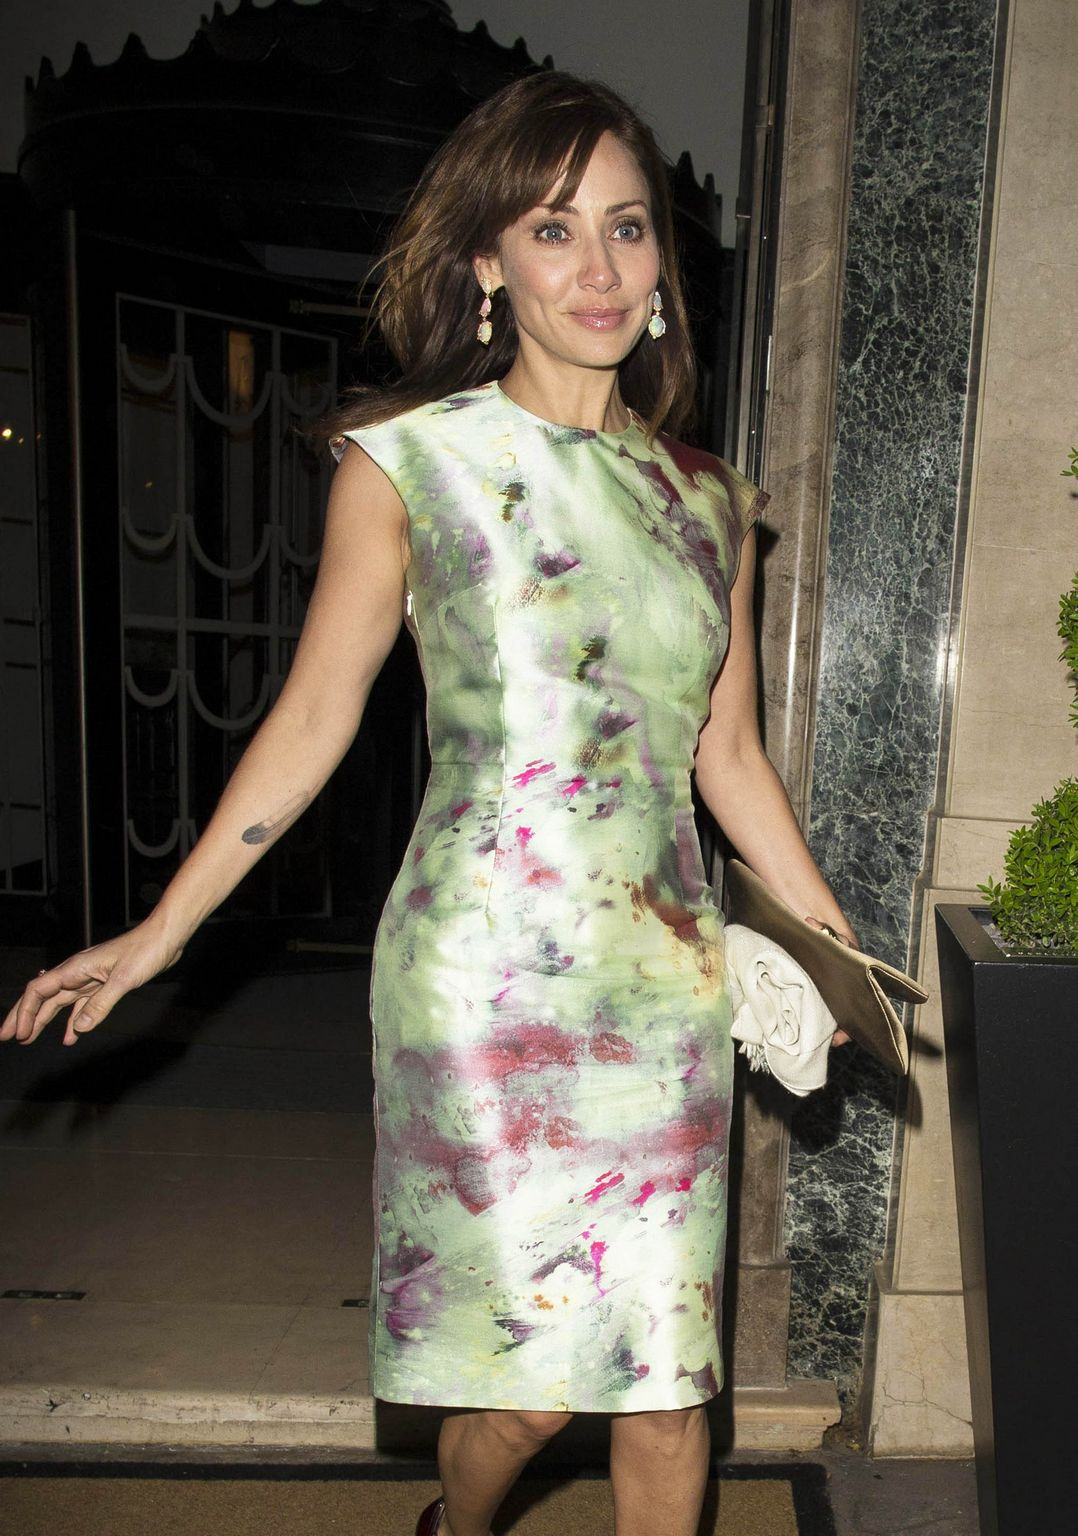 Elizabeth Hurley, Trinny Woodall and Natalie Imbruglia at Quercus Biasi Foundation Spring Gala-4